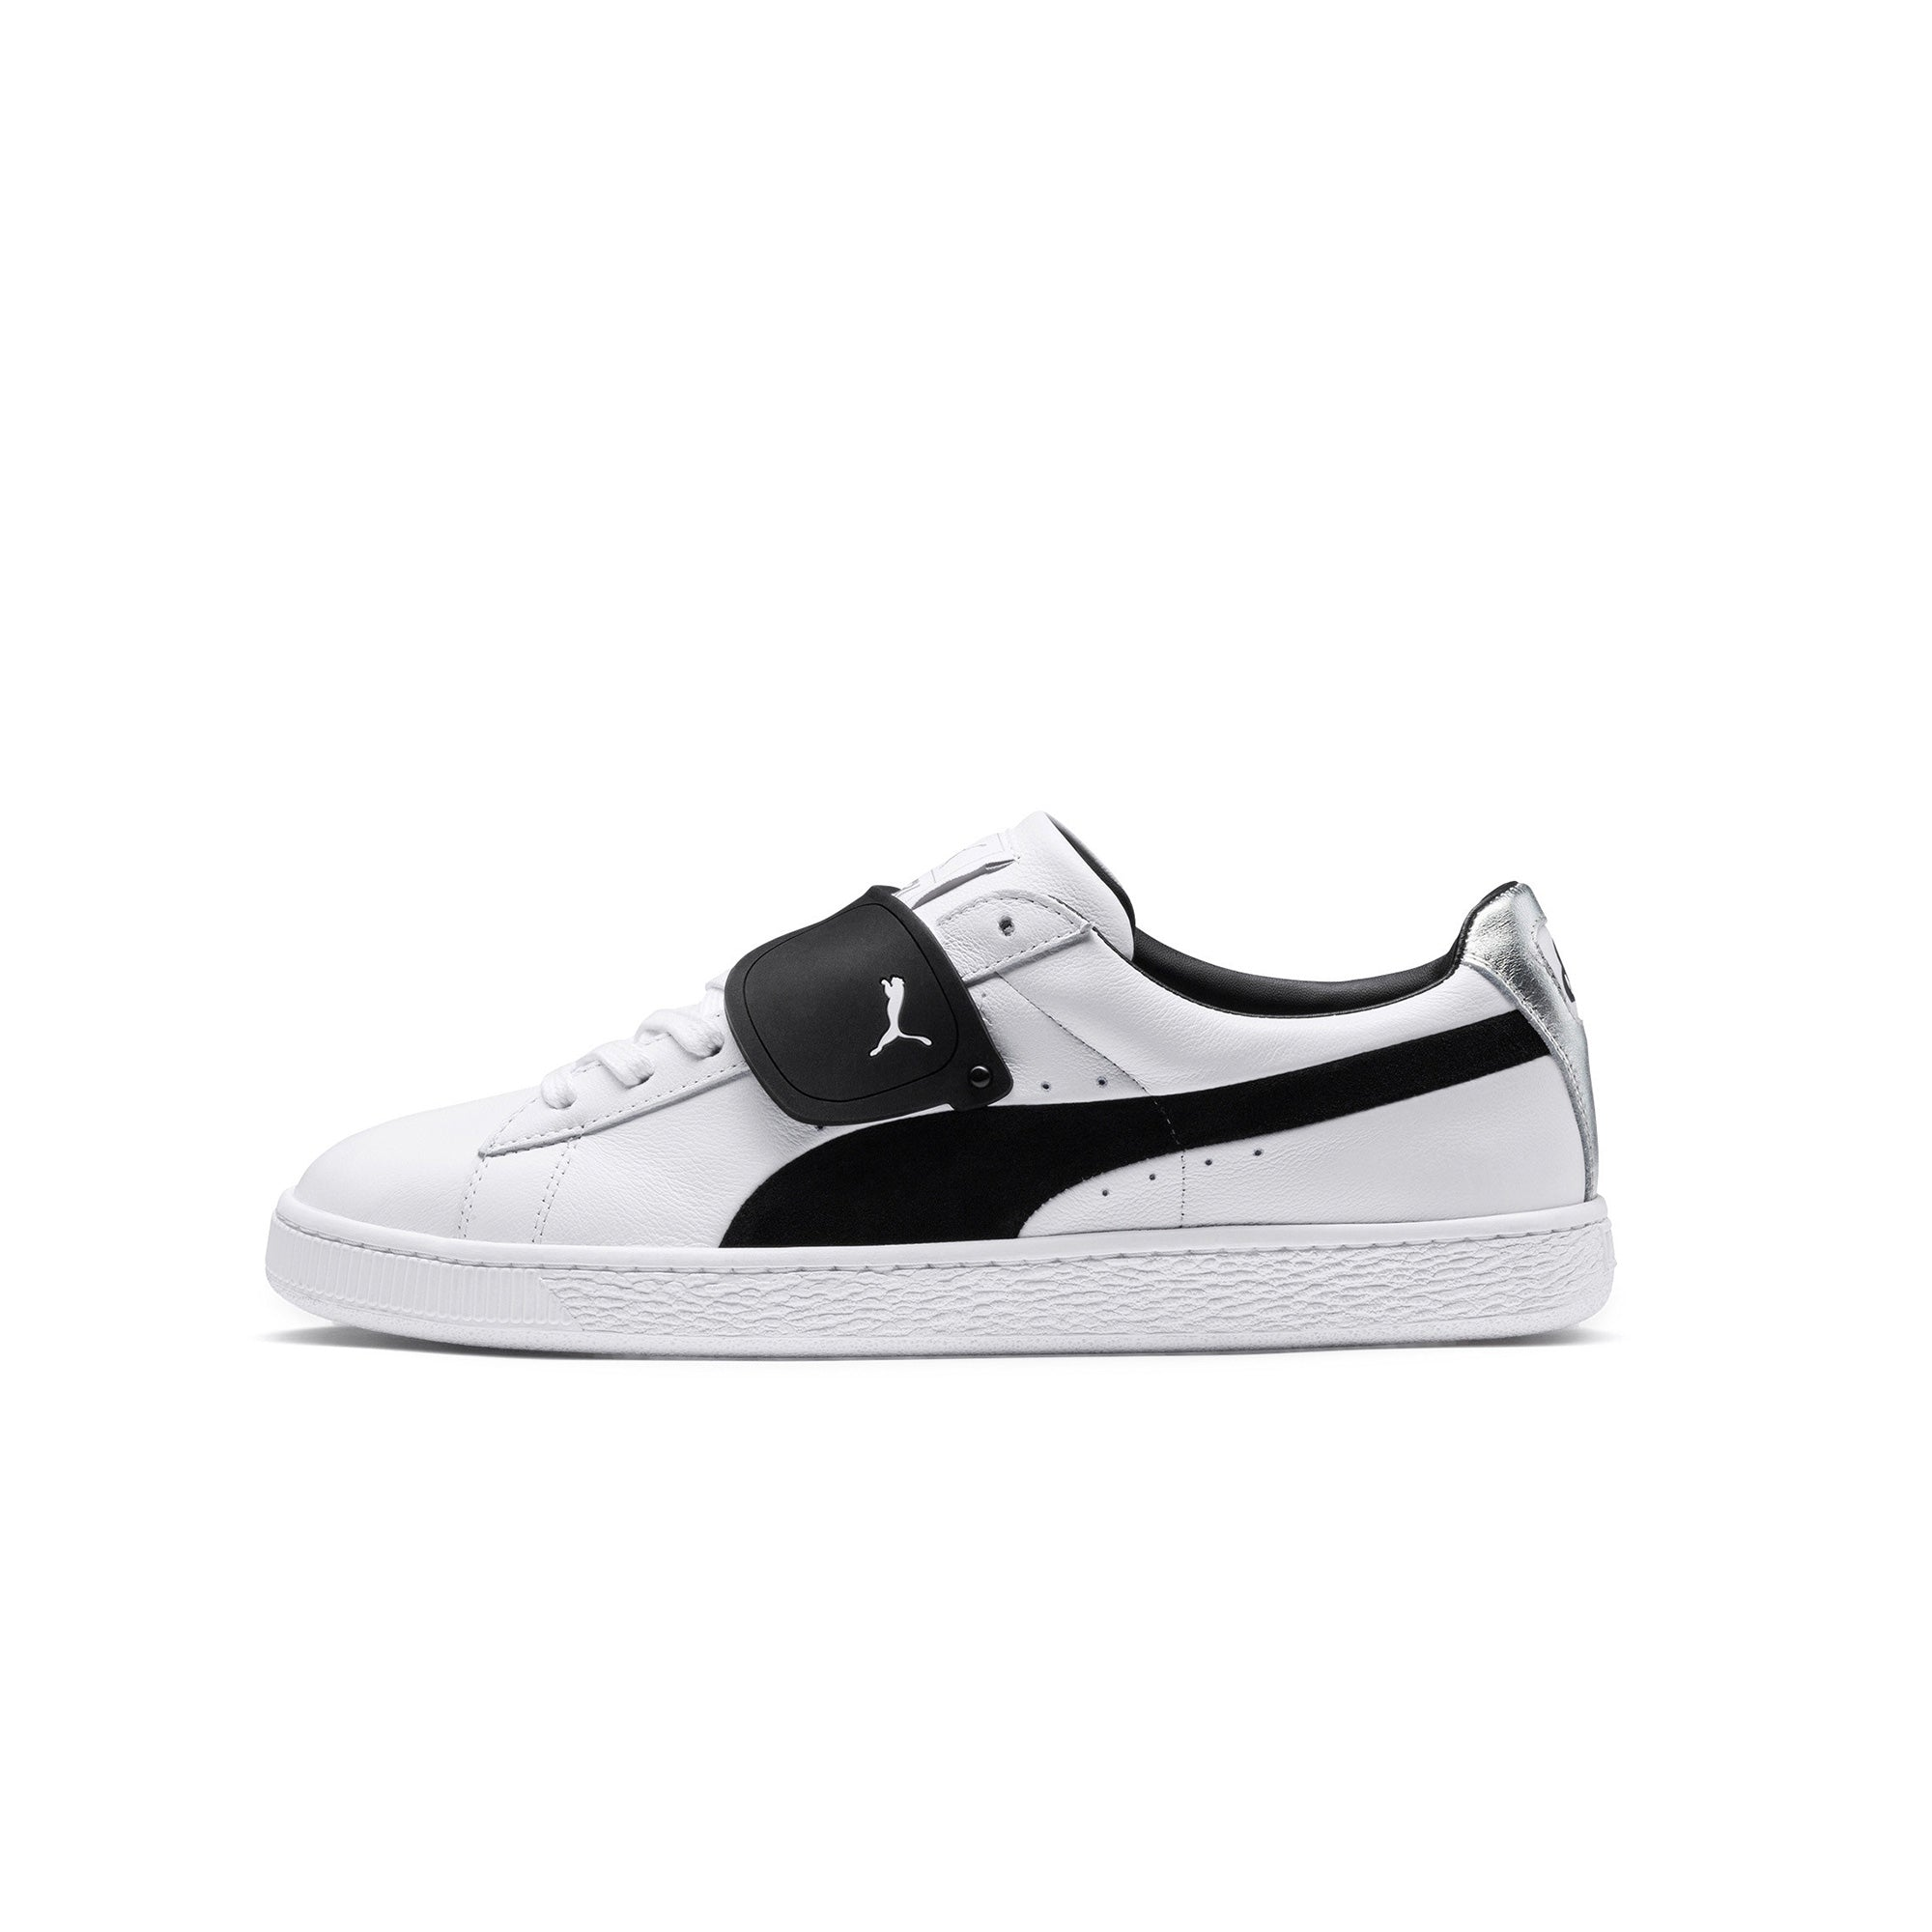 366314 01 Puma x Karl Lagerfeld Suede Classic | Sneakers